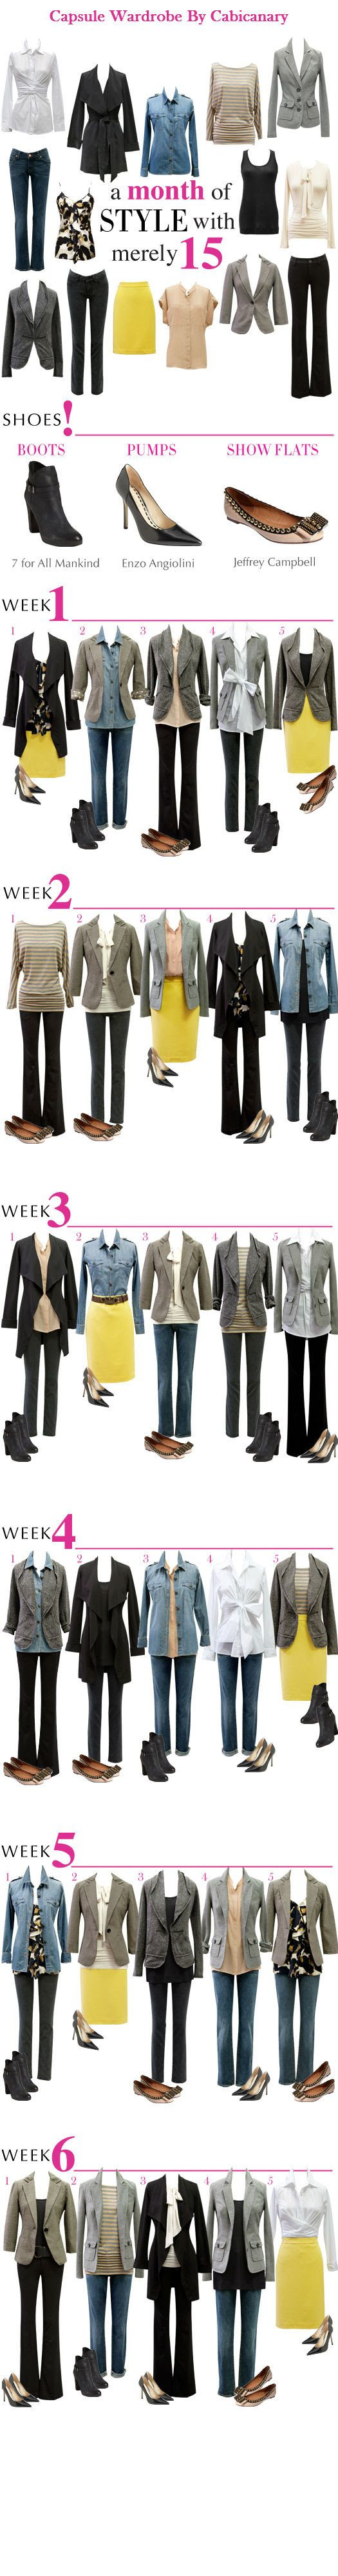 30 Days of Style from 15 Pieces!